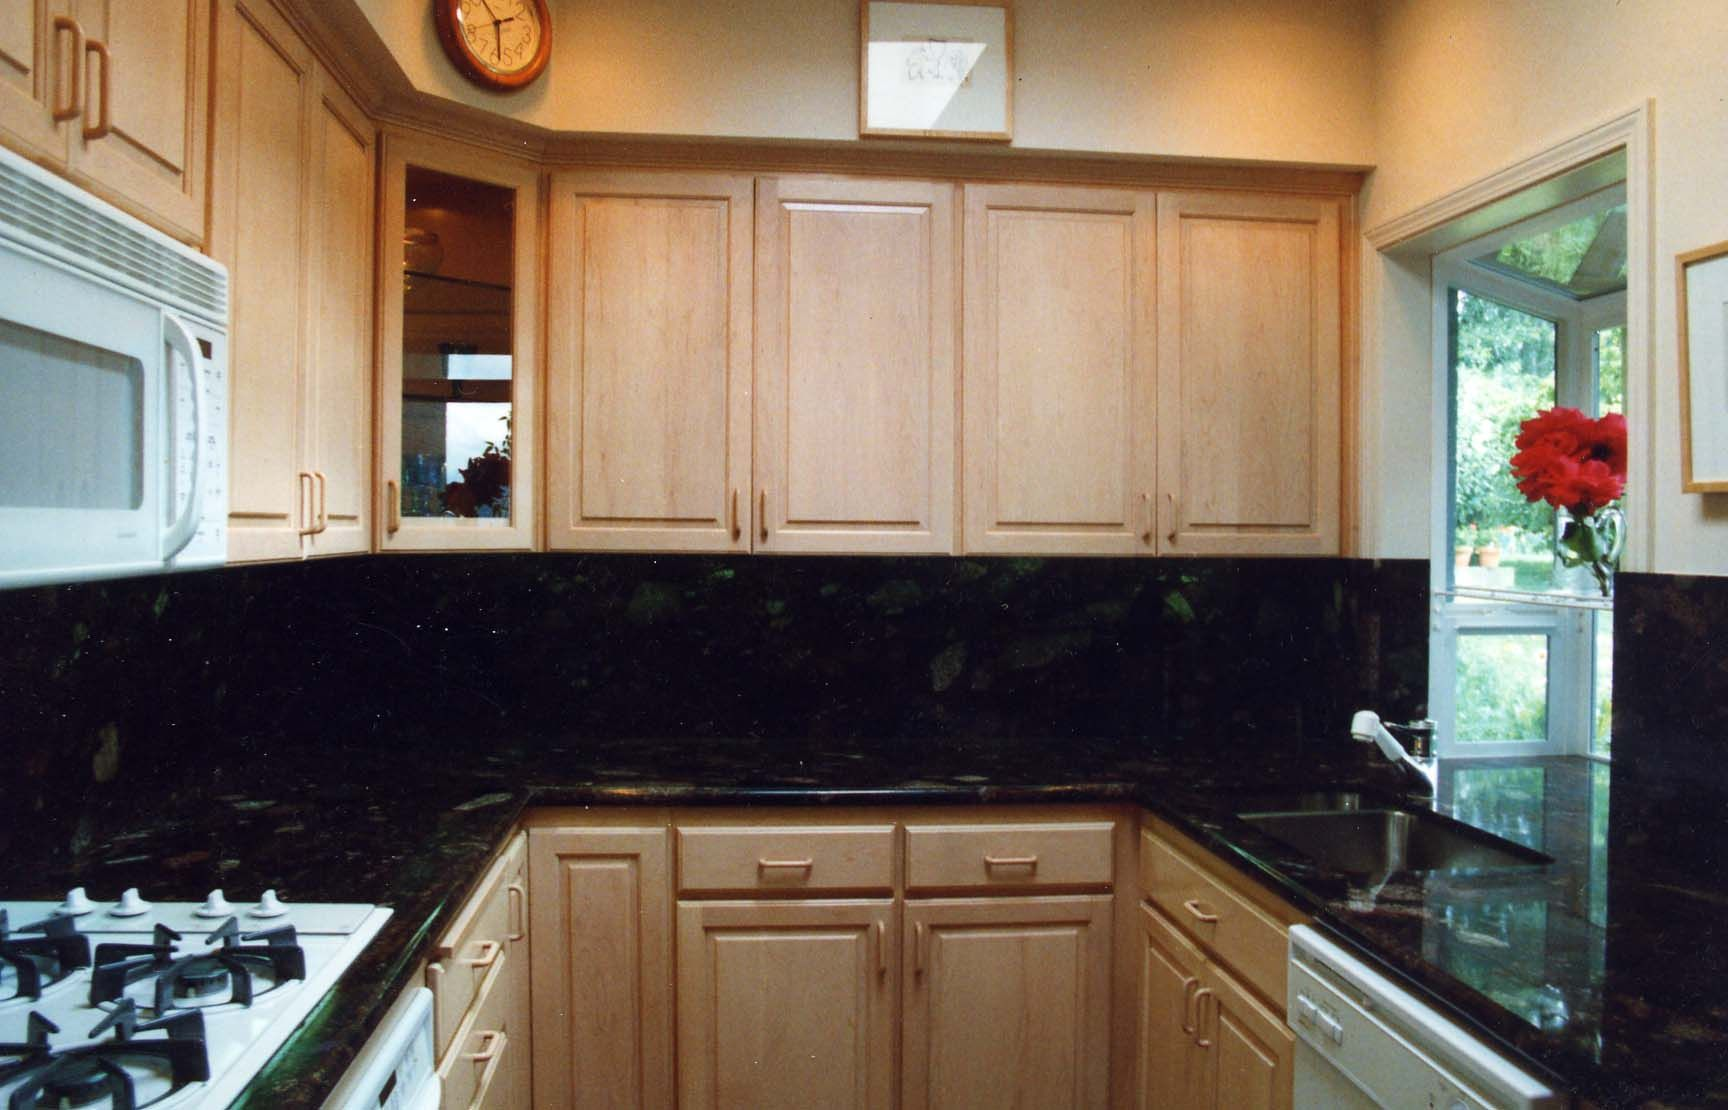 Granit Arbeitsplatte Virginia Black Centreville Home Decorating Kitchen Backsplash Granite